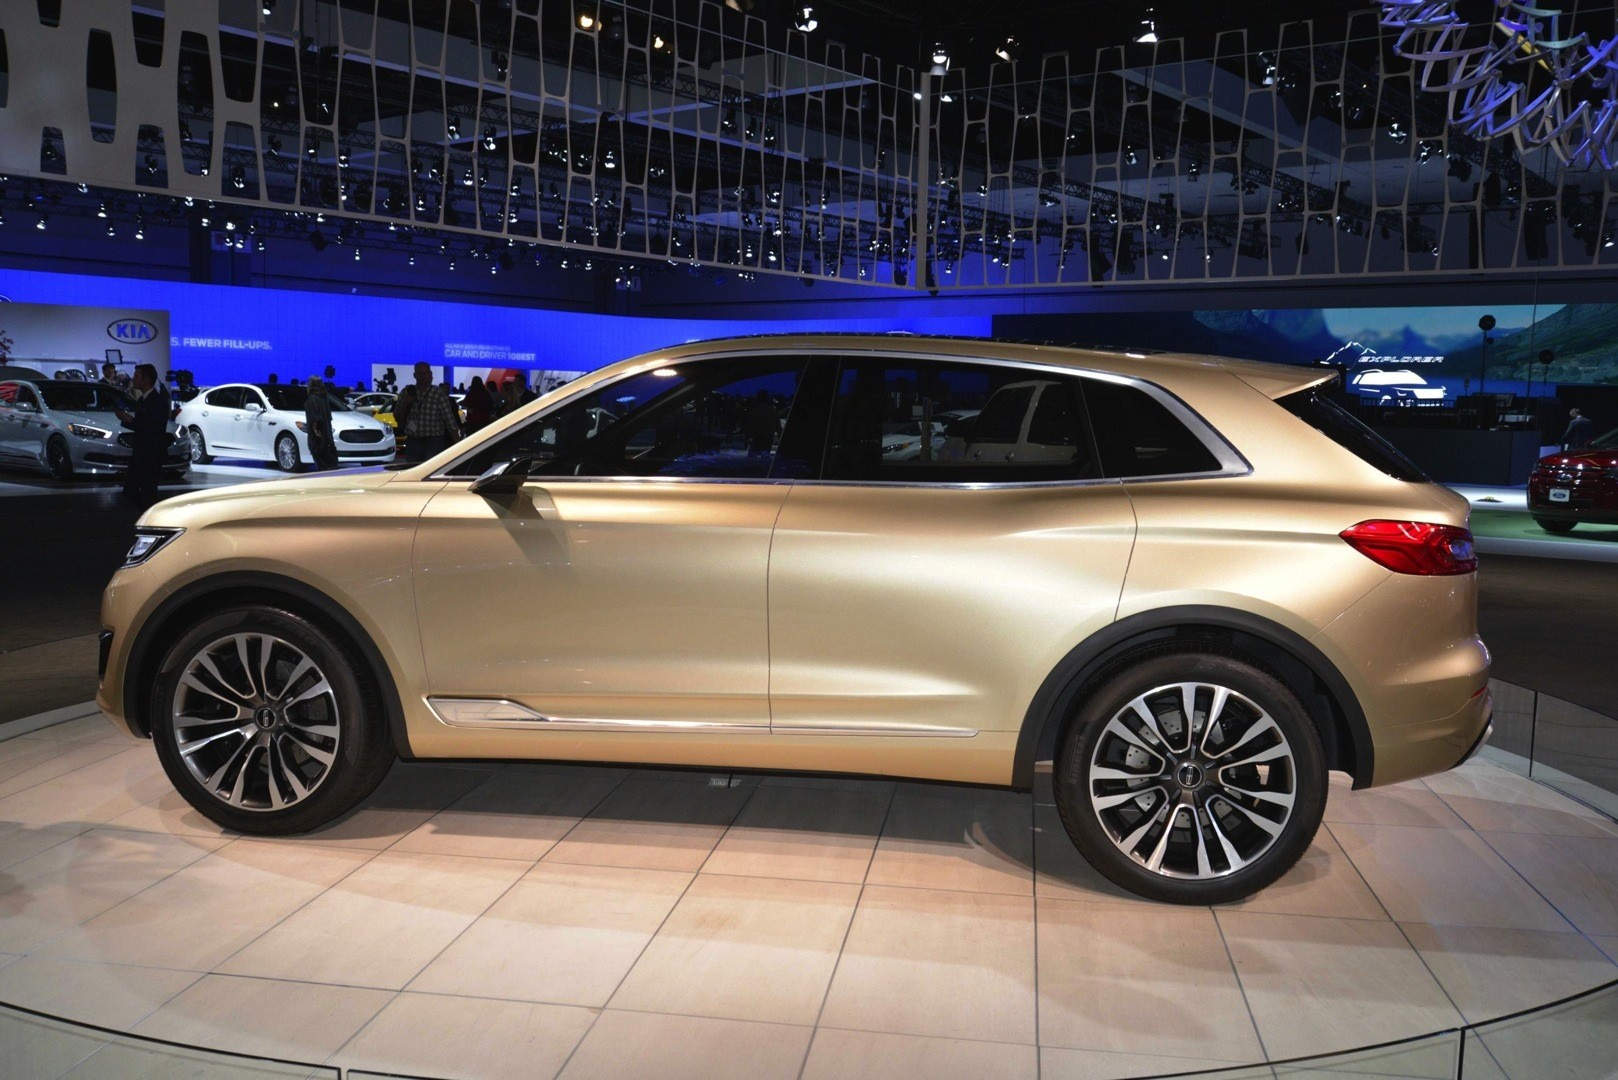 https://s1.cdn.autoevolution.com/images/news/gallery/2014-la-auto-show-premiere-lincoln-mkx-concept-shows-dynamic-leds-in-the-us-live-photos_3.jpg